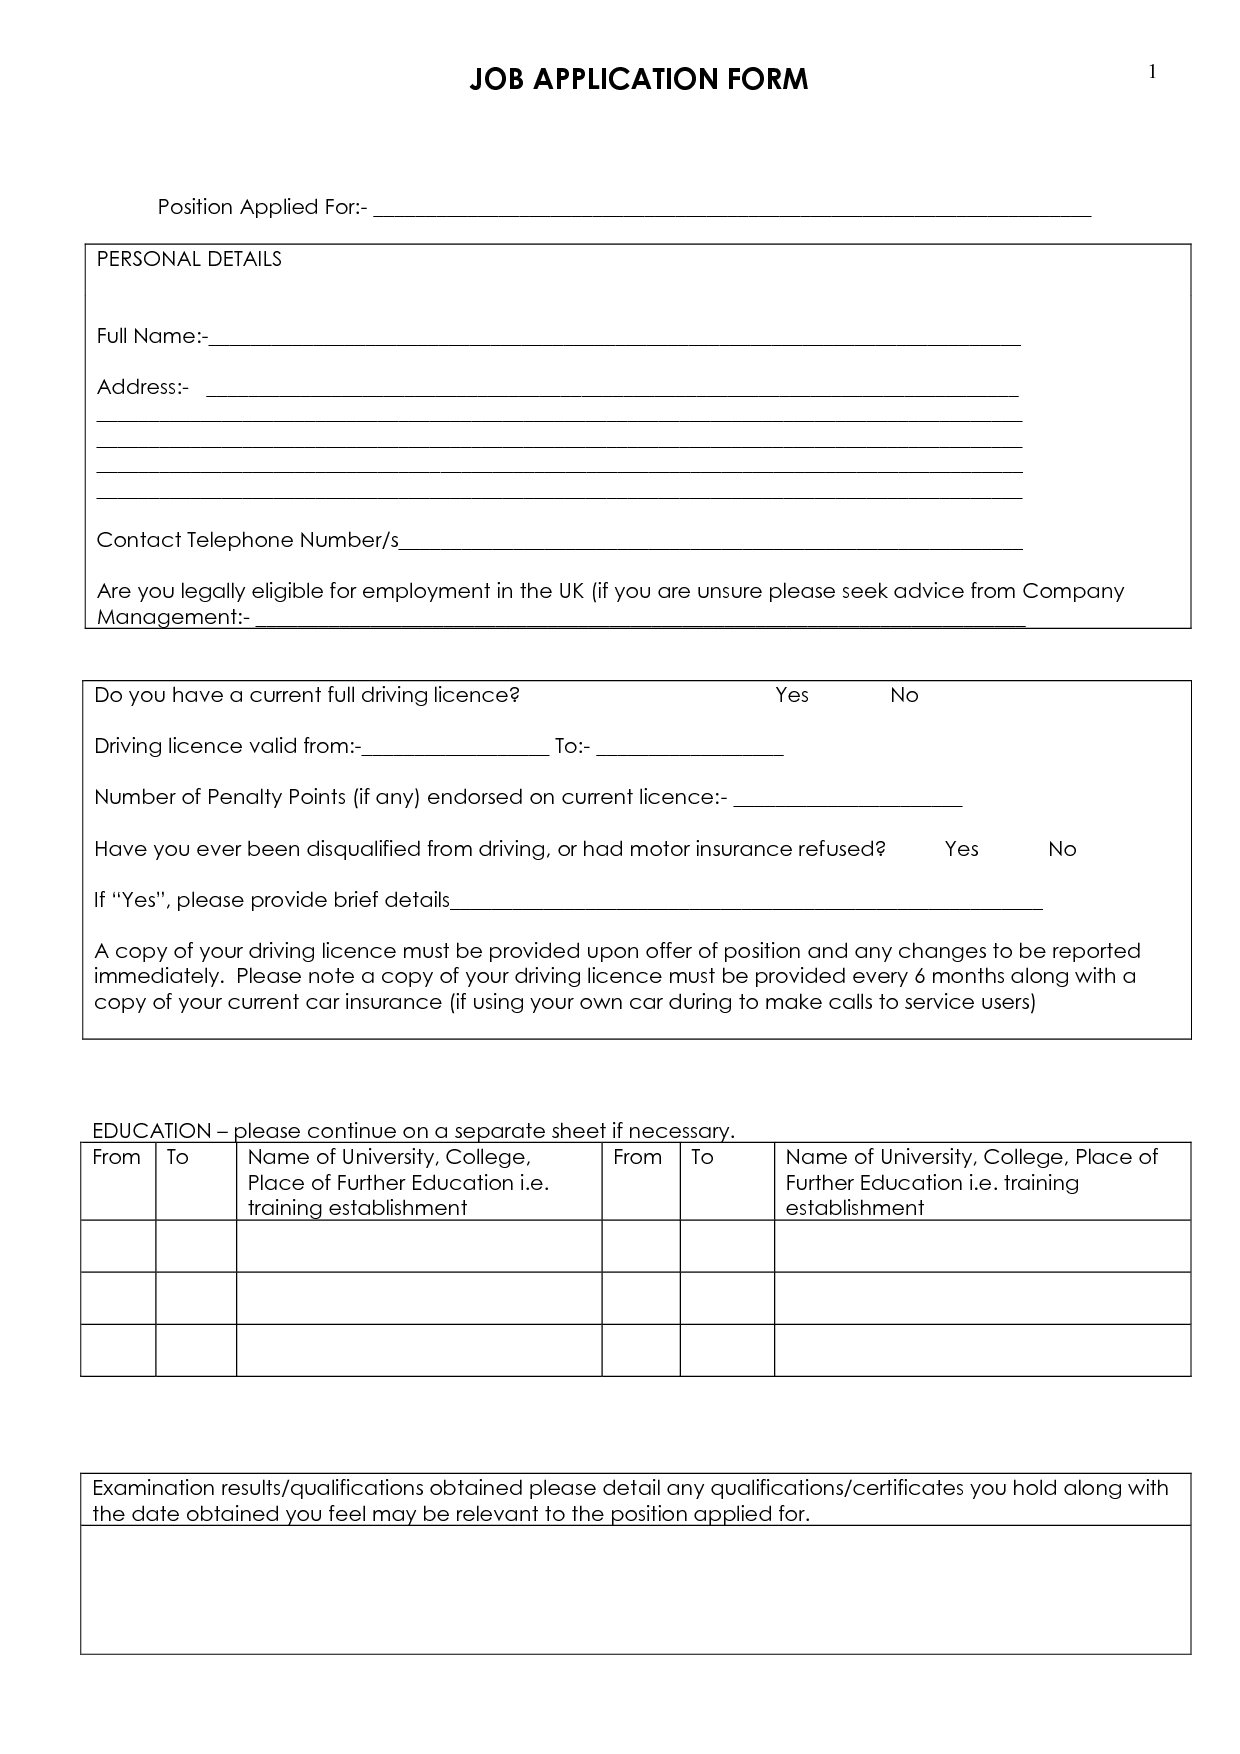 blank job application printable printable job application forms search amp apply online